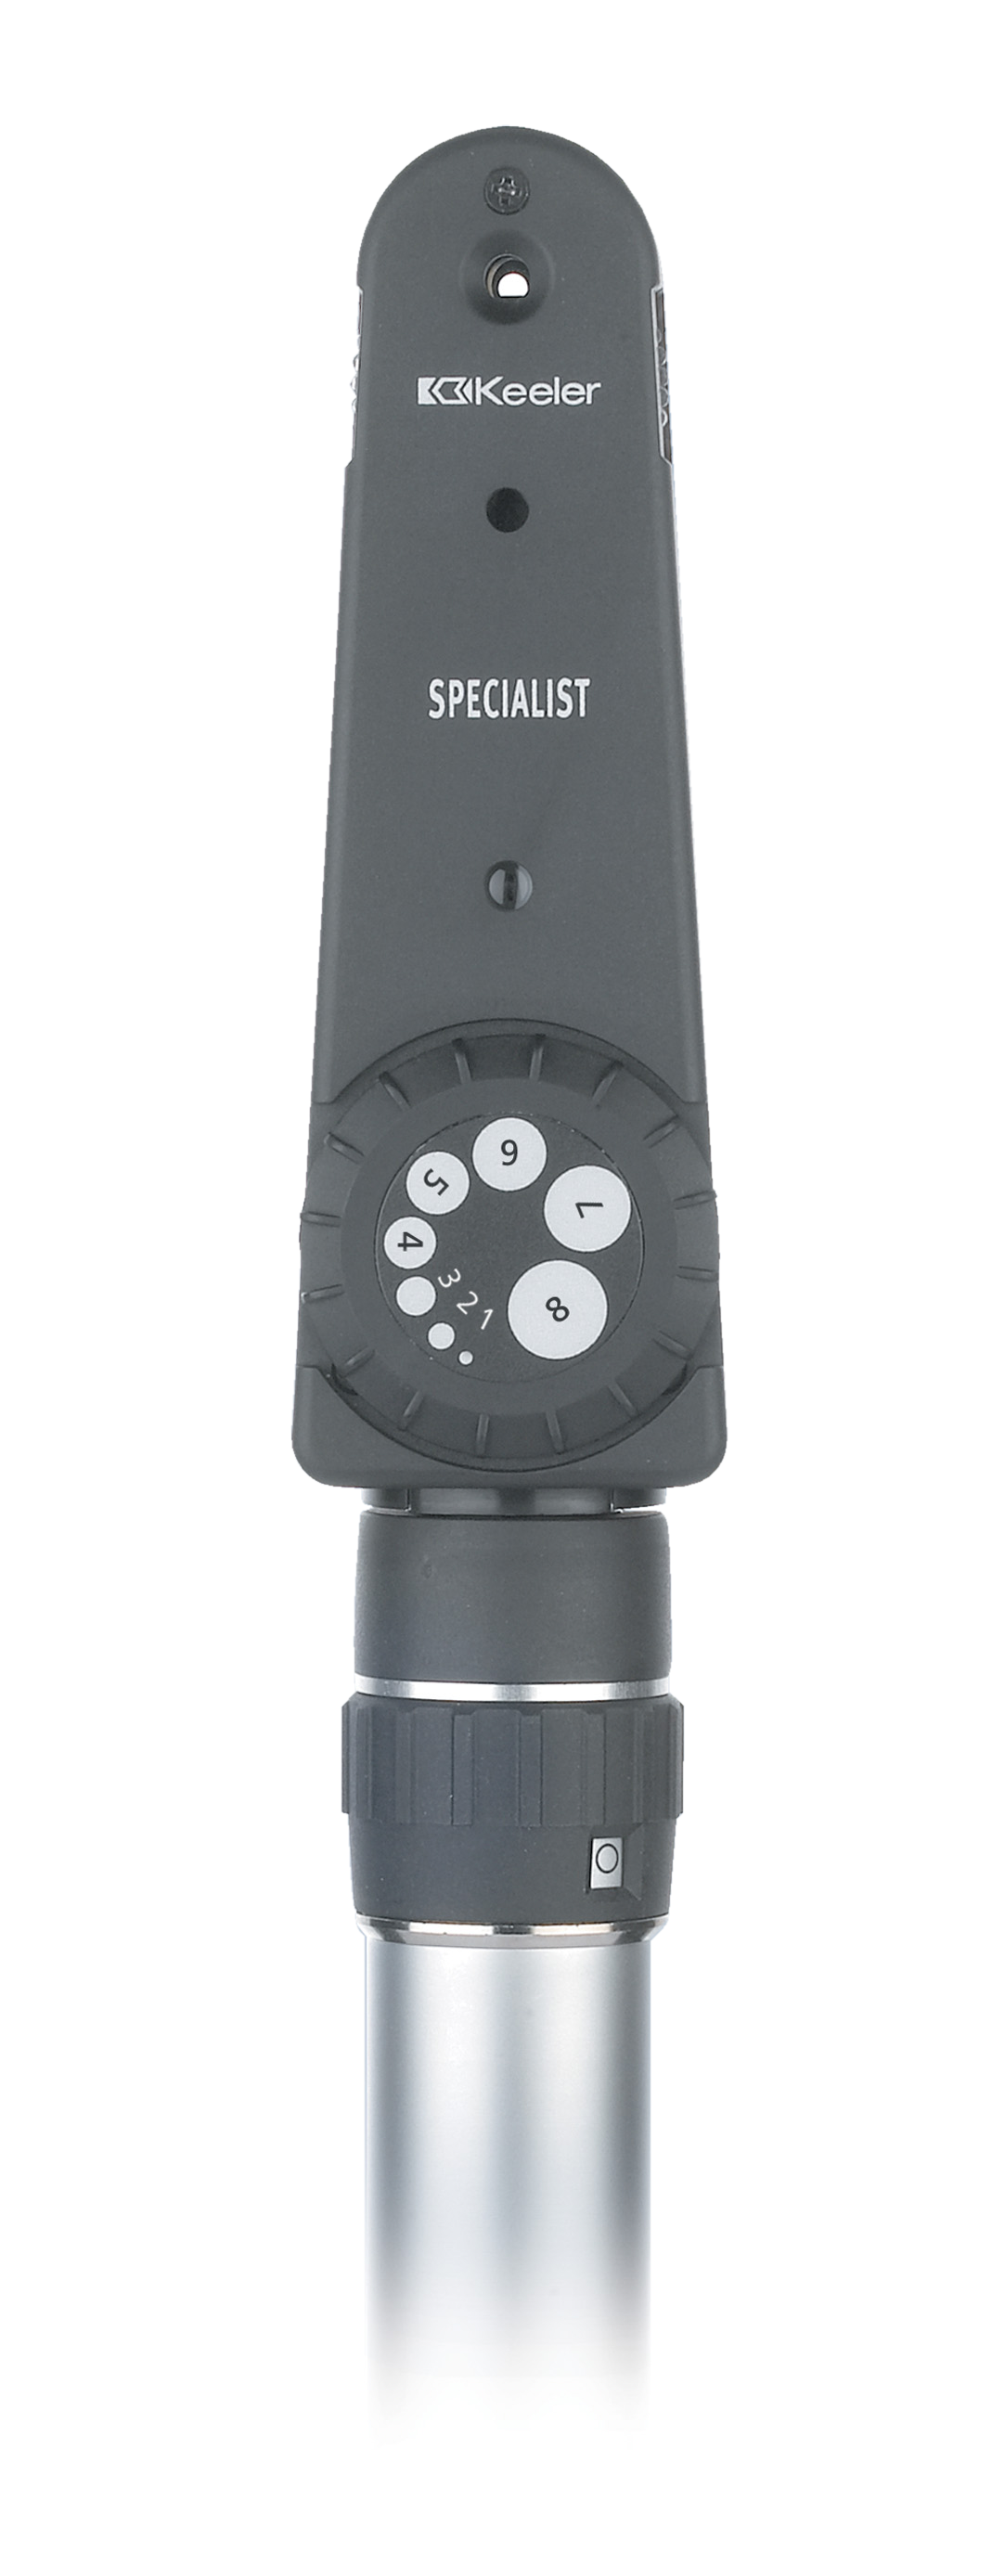 KEELER LED Specialist Ophthalmoscope 2.8V